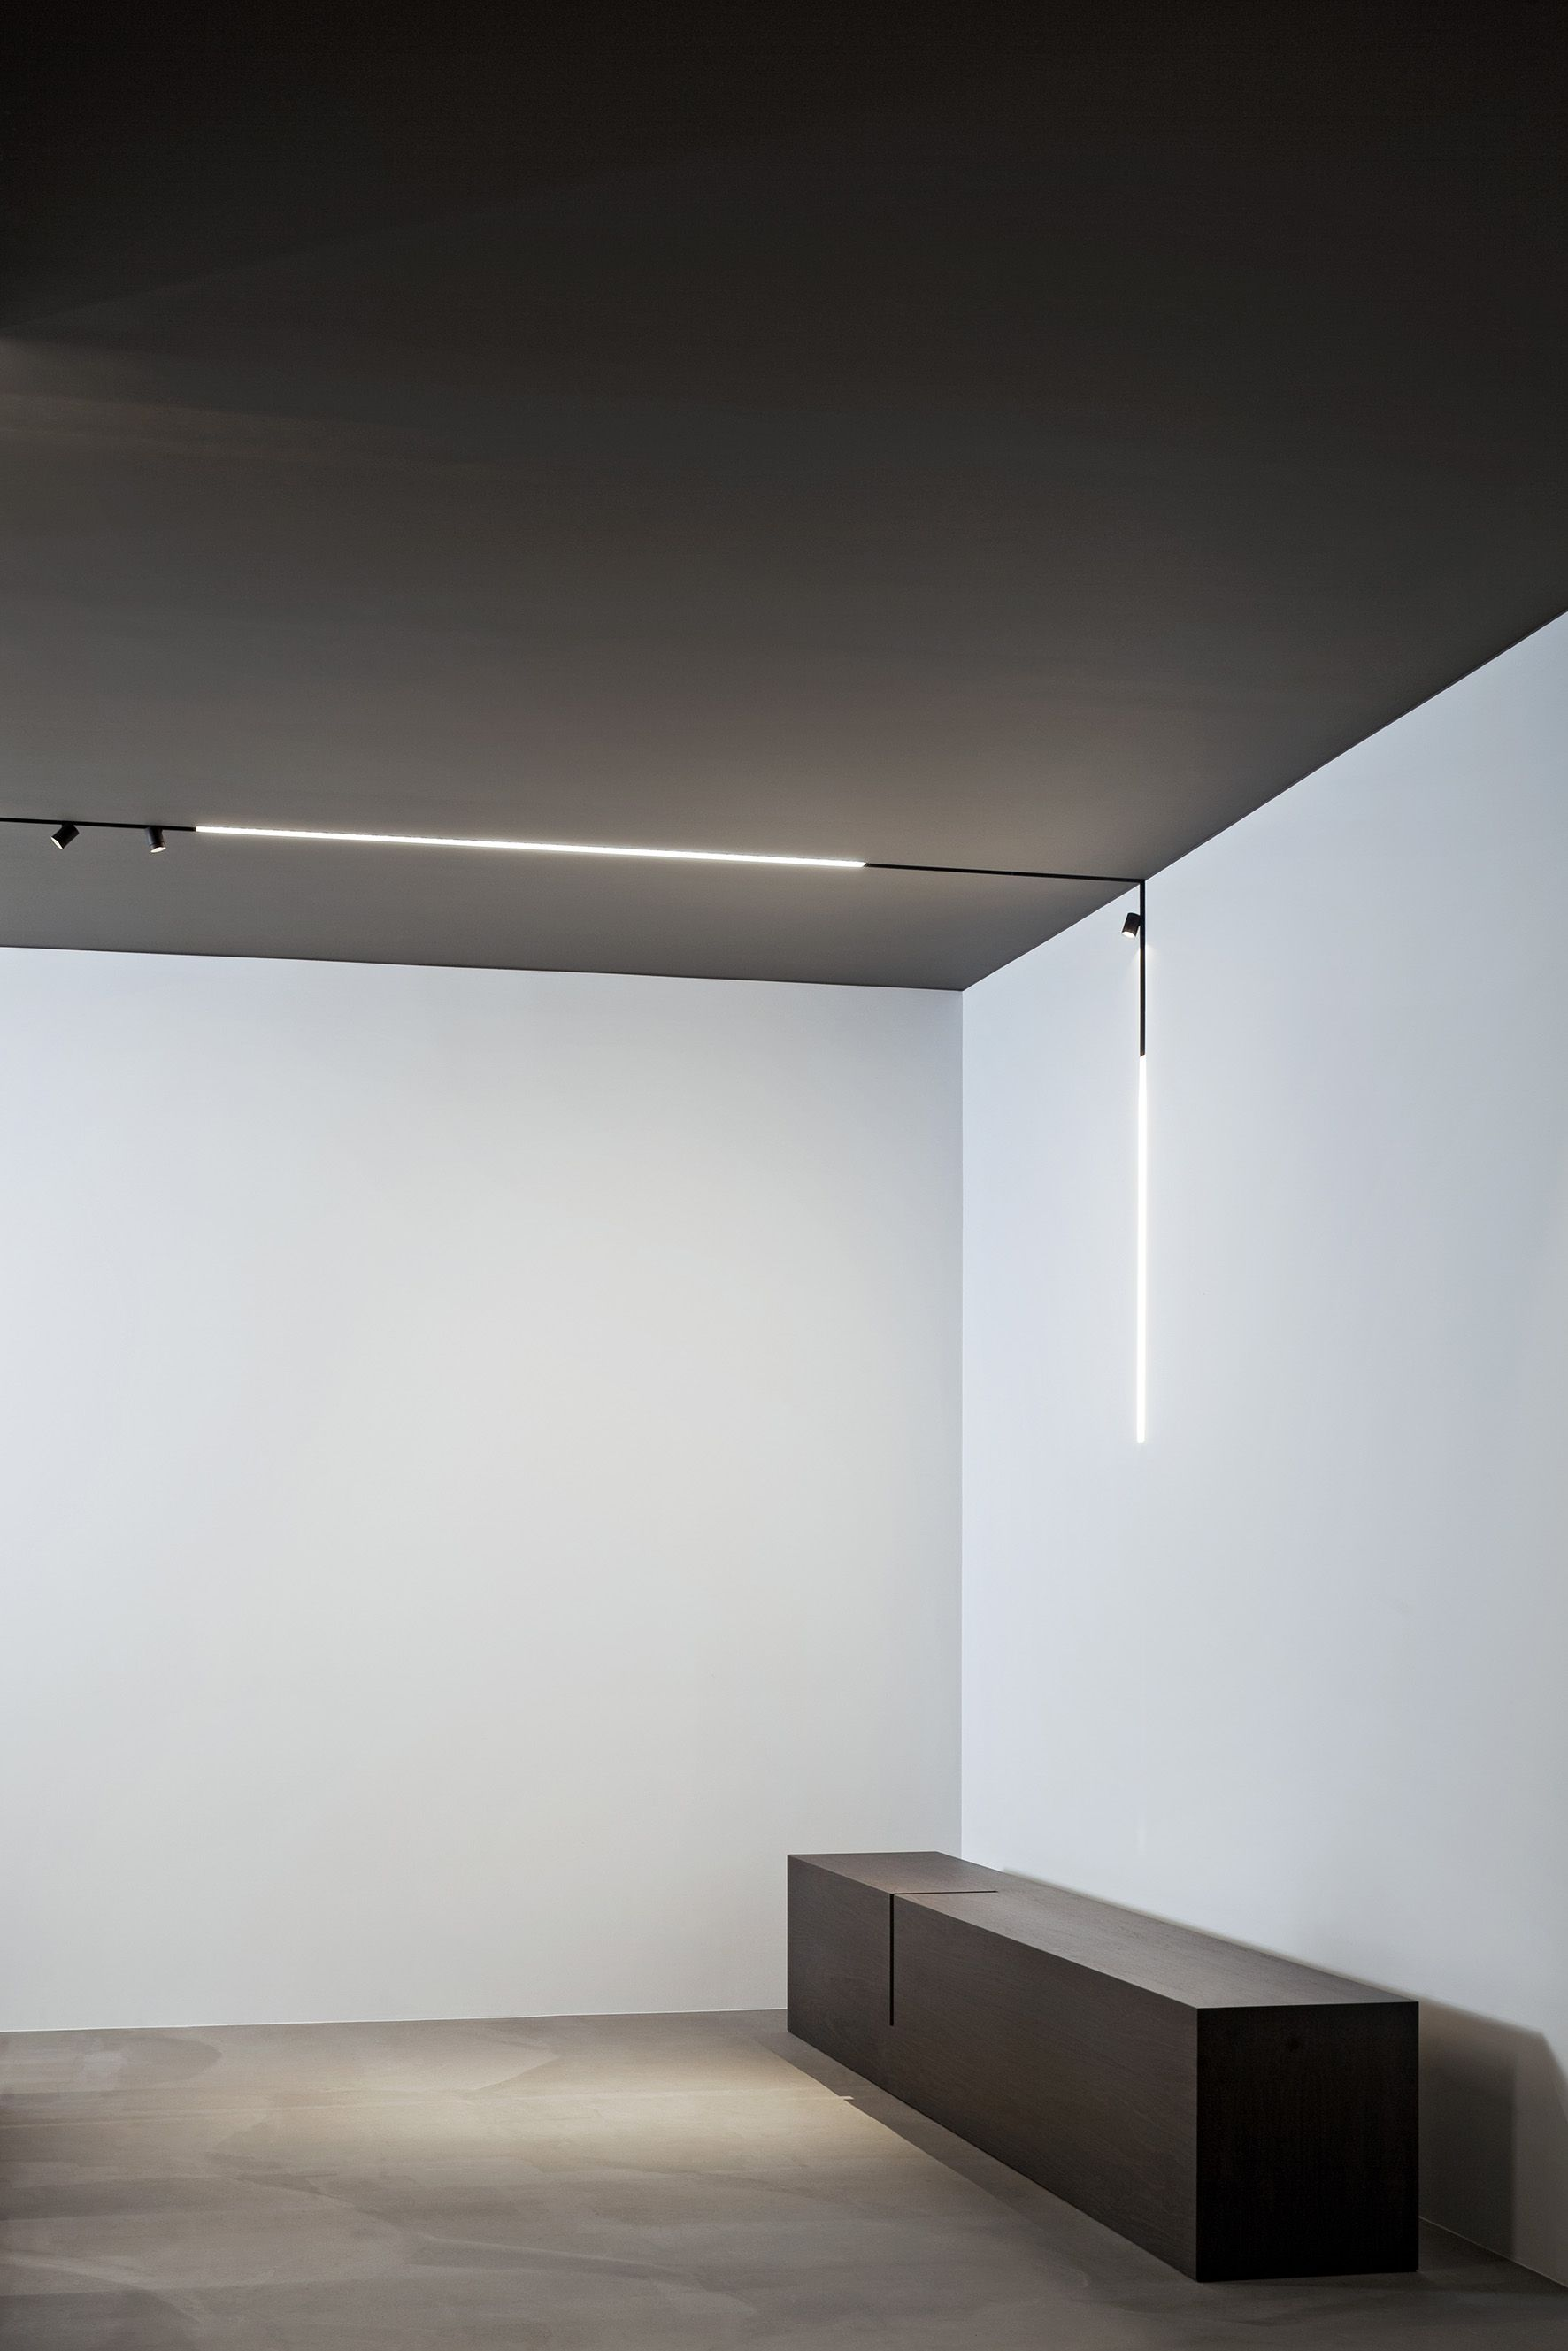 A High Tech Led Lighting System For Interior Architecture The